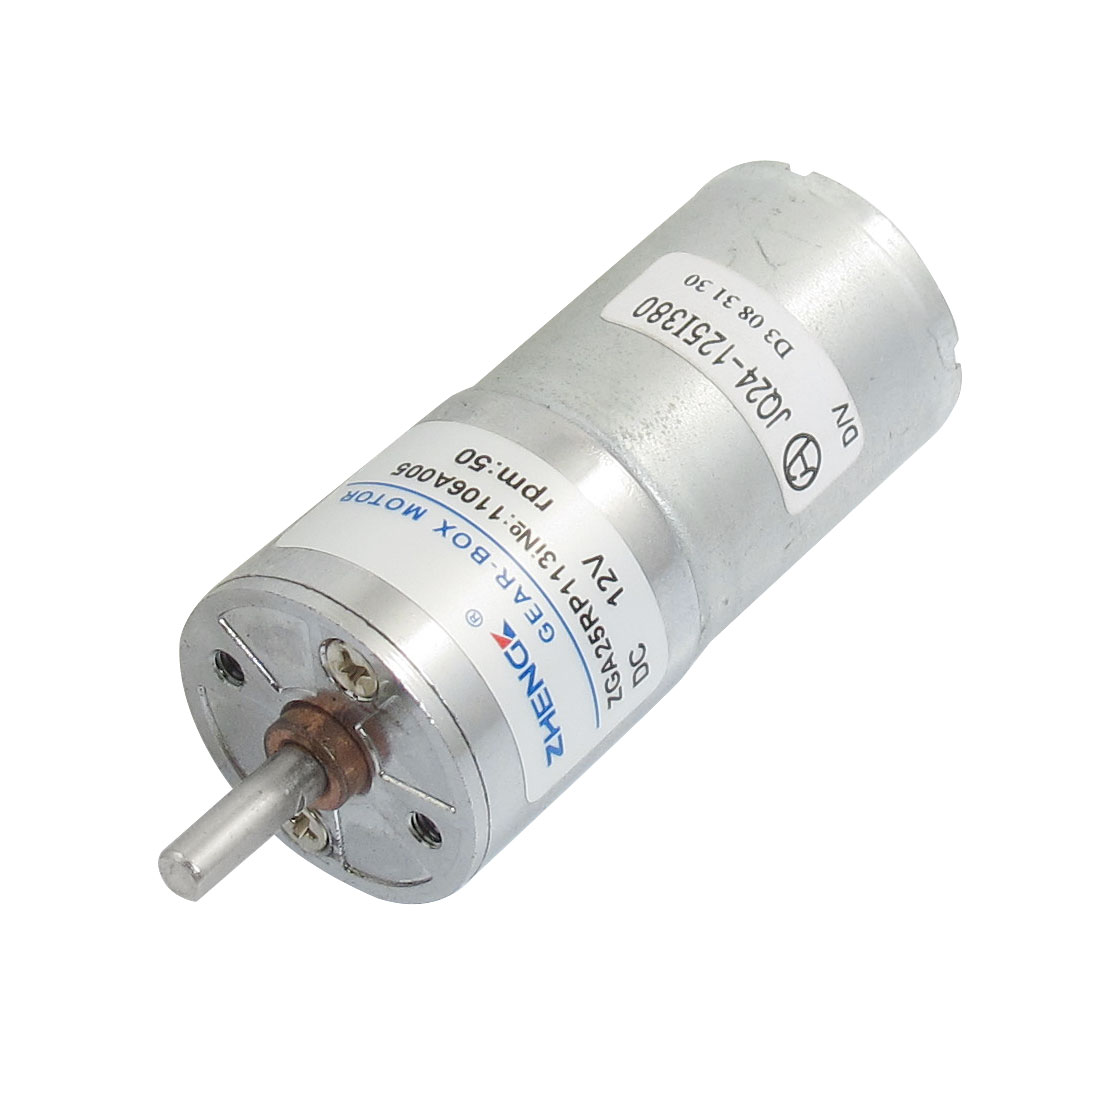 25mm Body Dia. Two Terminals Auto Shutter Gear Motor 12VDC 50RPM